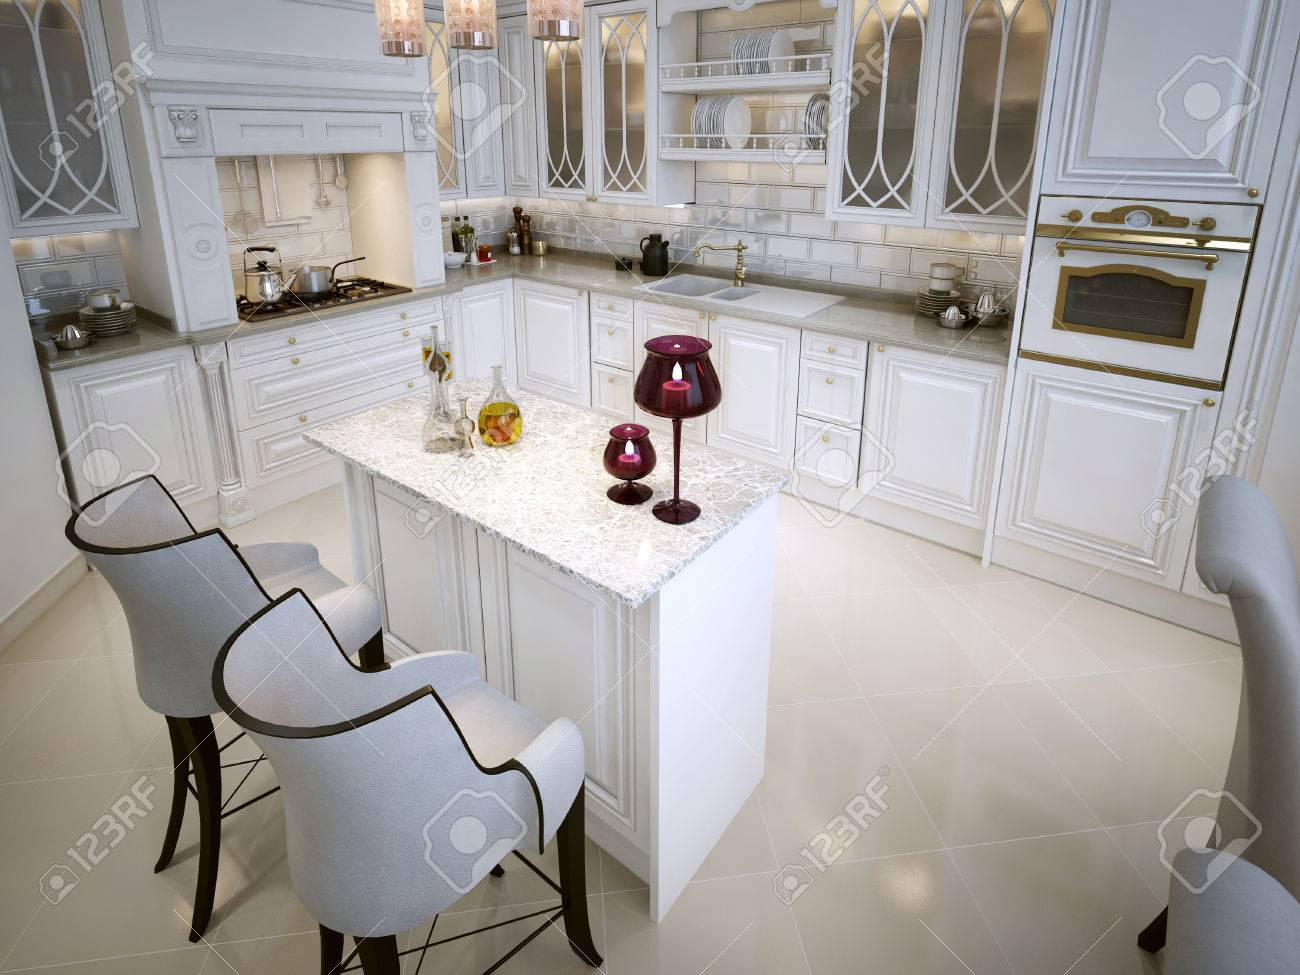 Luxury White Kitchen With A Breakfast Bar In Arabic Style. 3D ...